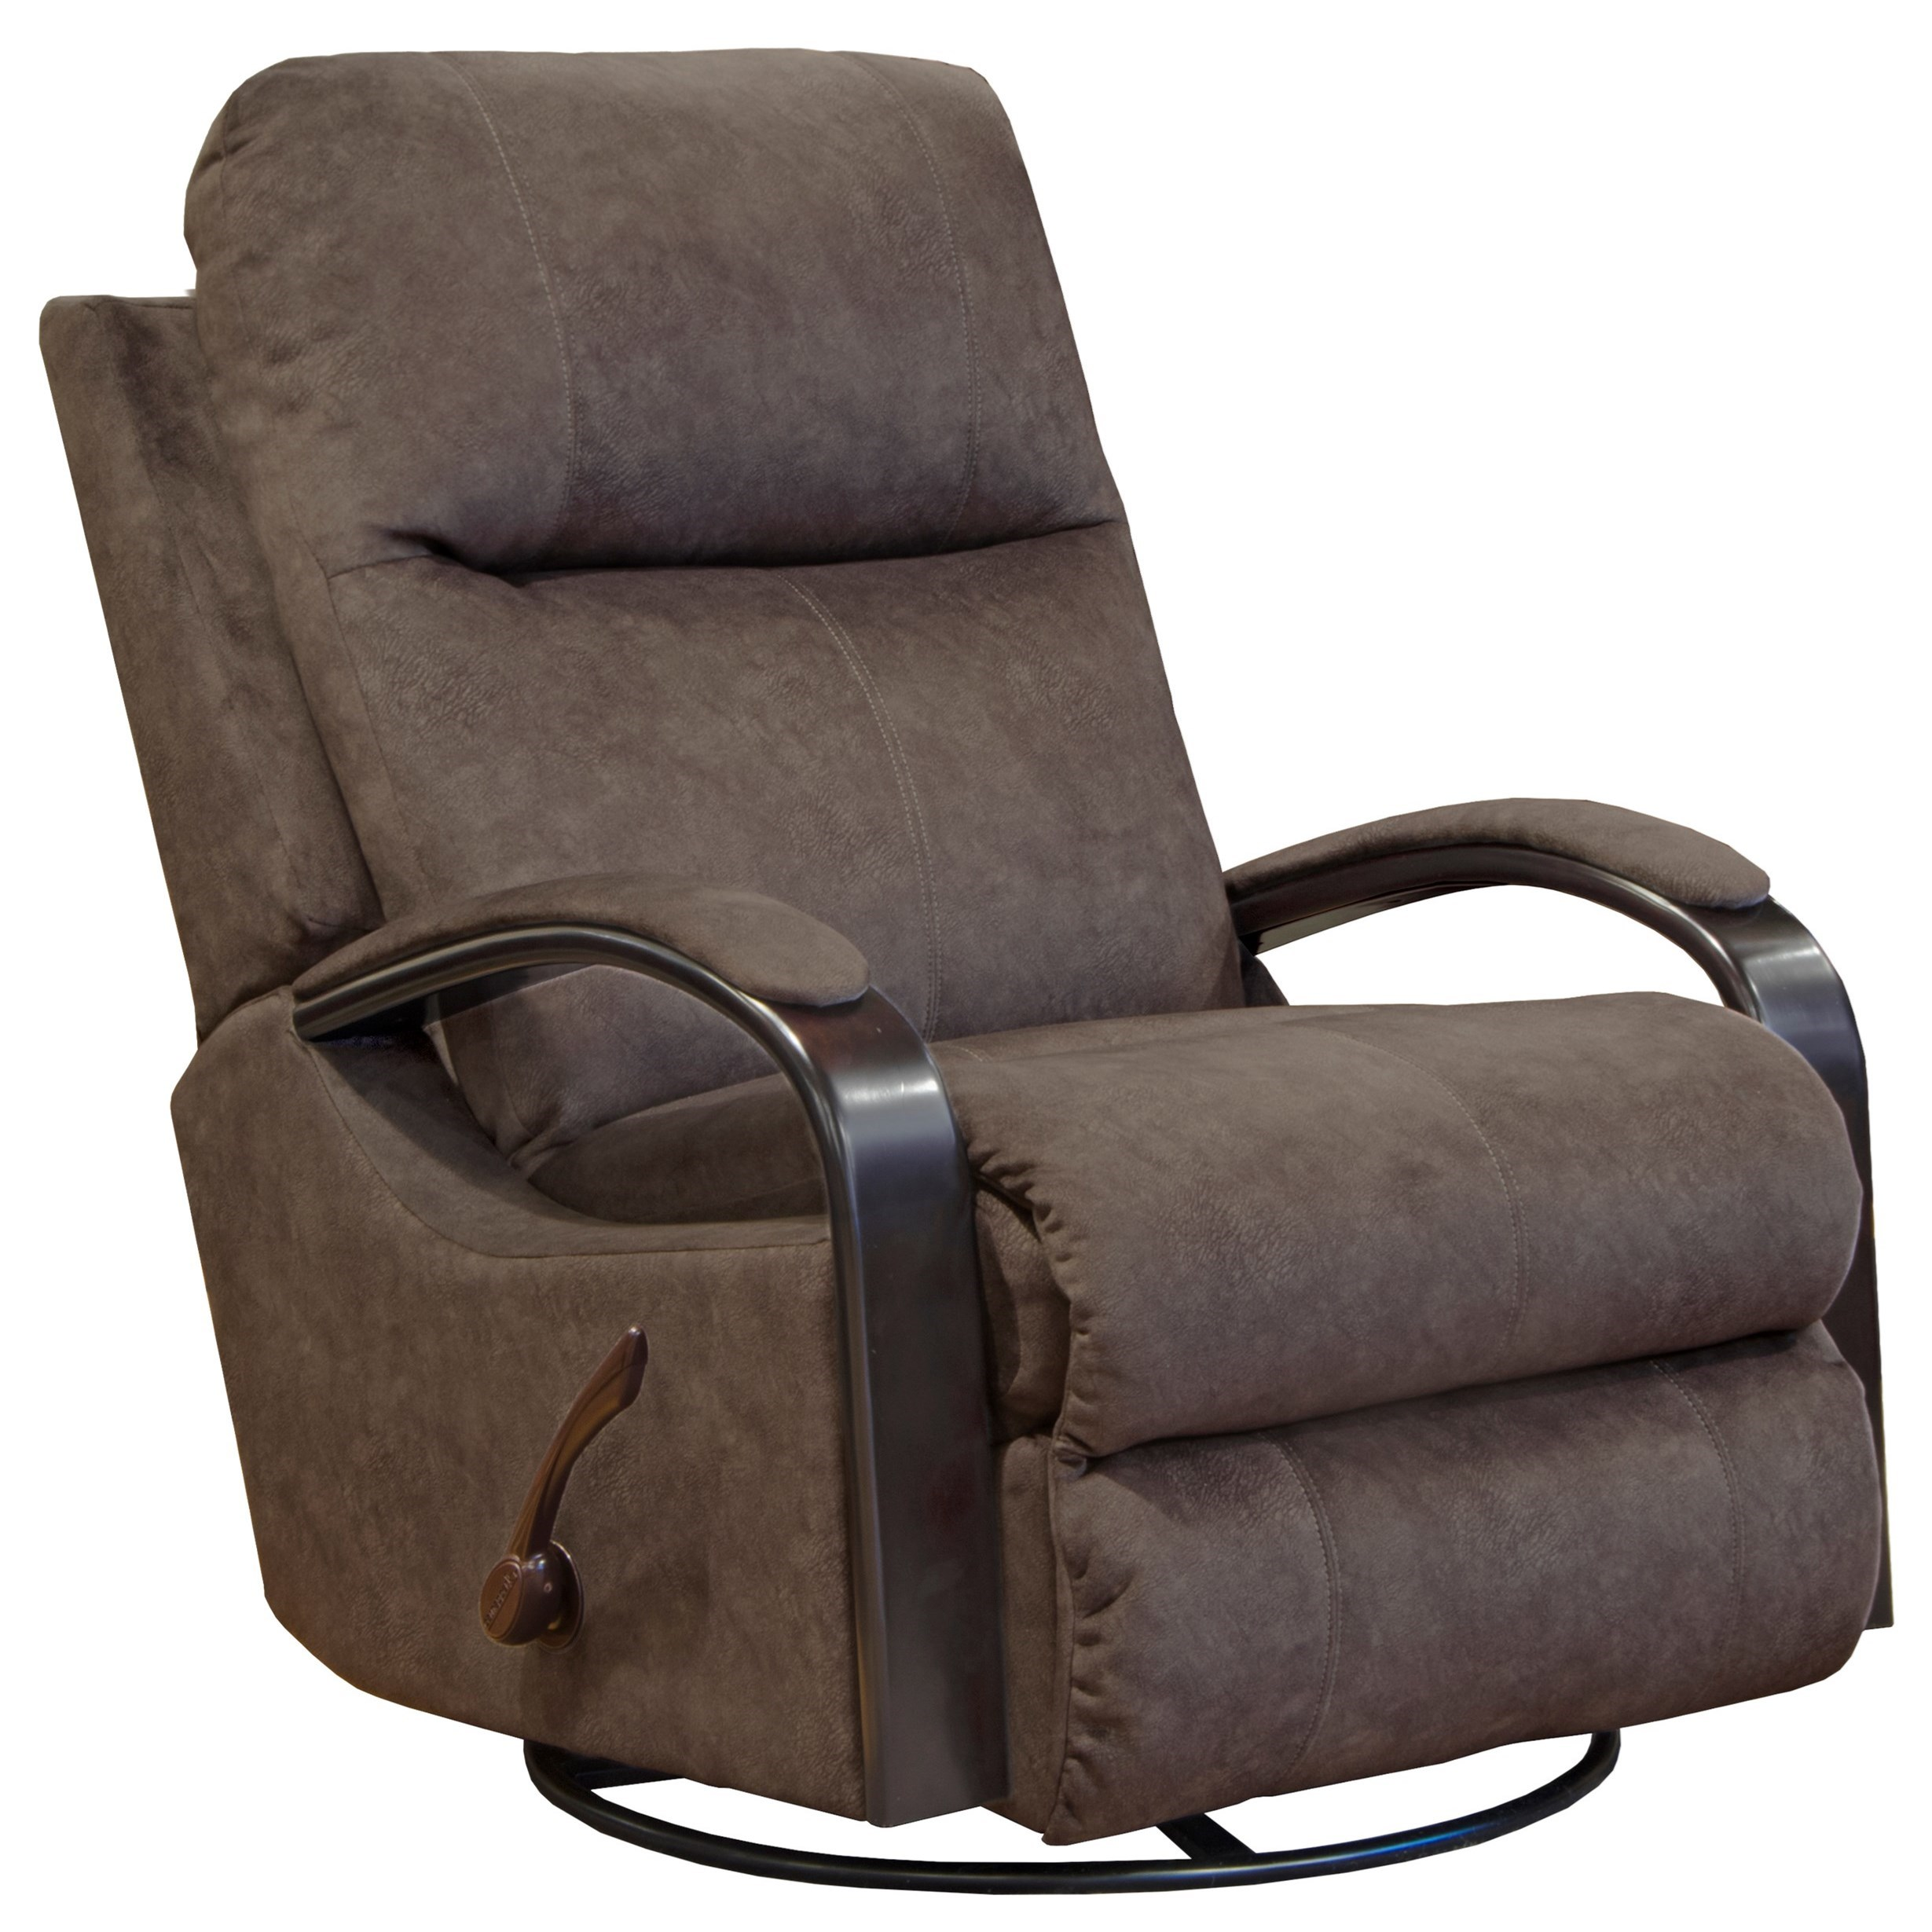 Catnapper Niles Swivel Glider Recliner With Track Arms